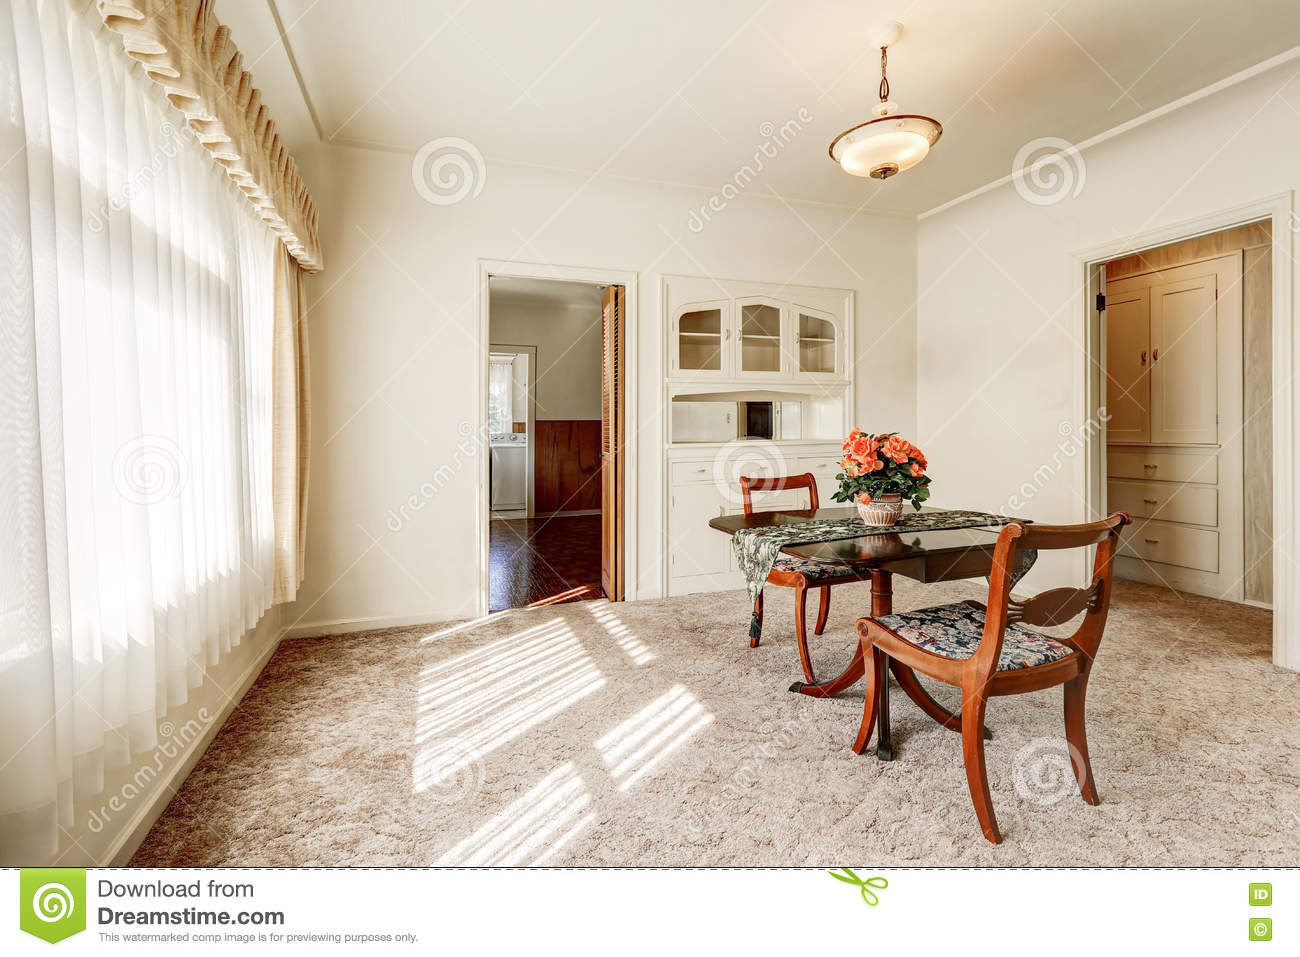 Interior Of Retro Style Dining Room With Carpet Floor And Wooden Table Set For Two Person Northwest USA